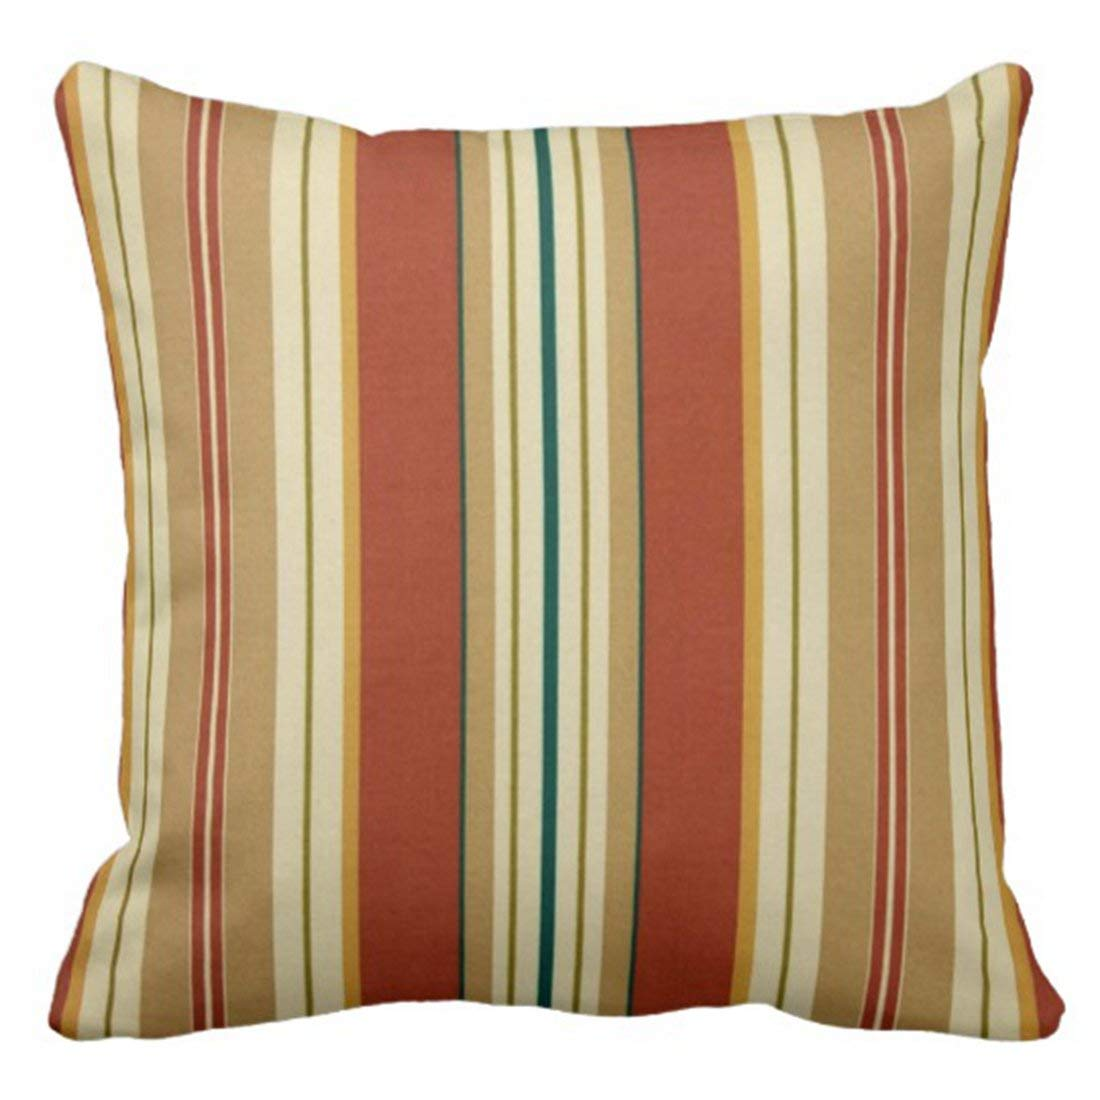 WOPOP Vintage Tribal Orange Blue and Tan Stripes Native Pillowcase Cushion Cover 20x20 inches